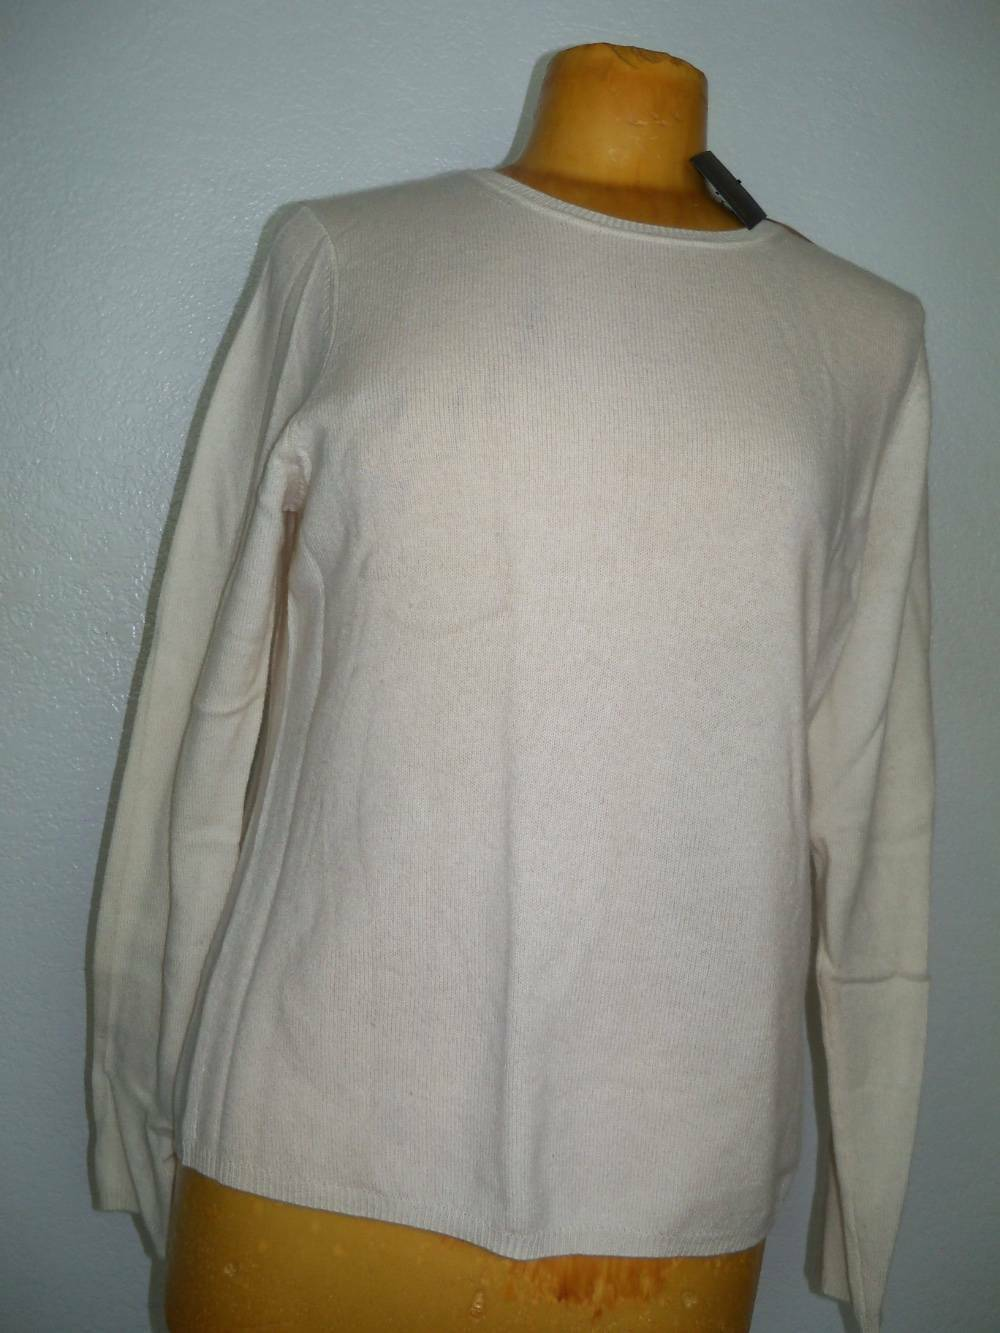 NEW  Womens Large CHARTER CLUB LUXURY Ivory Cashmere Sweater